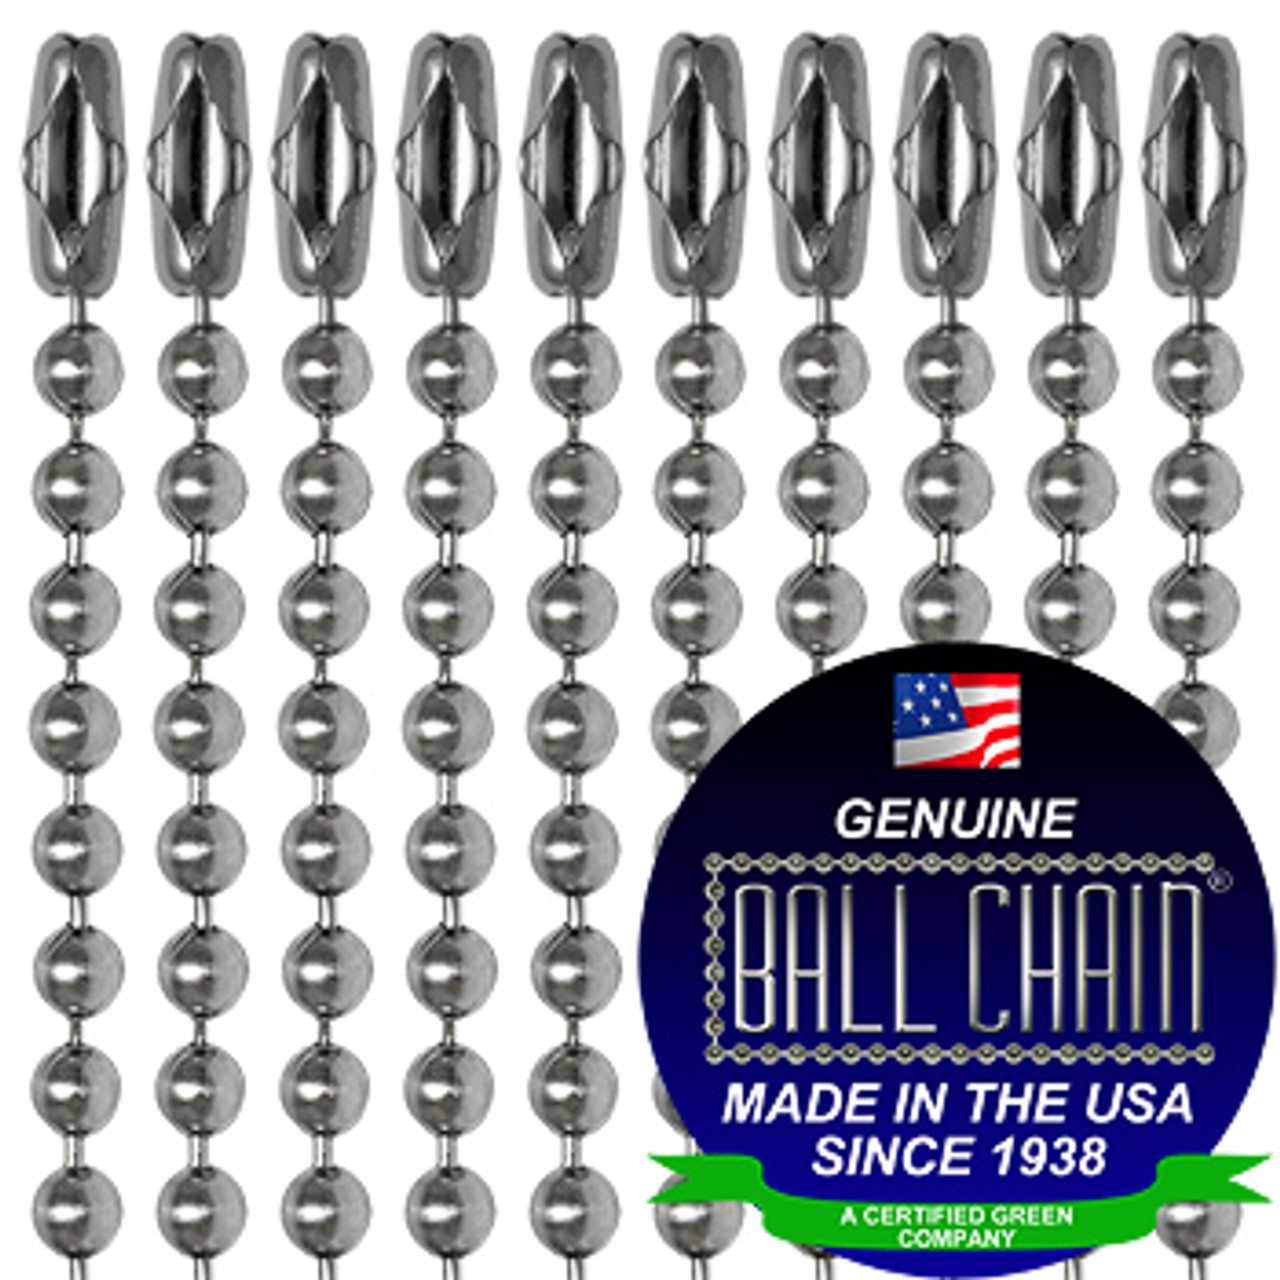 #3 Stainless Steel Ball Chains with Connector - 24 Inch Length end of chains in rows with ball chain seal on the